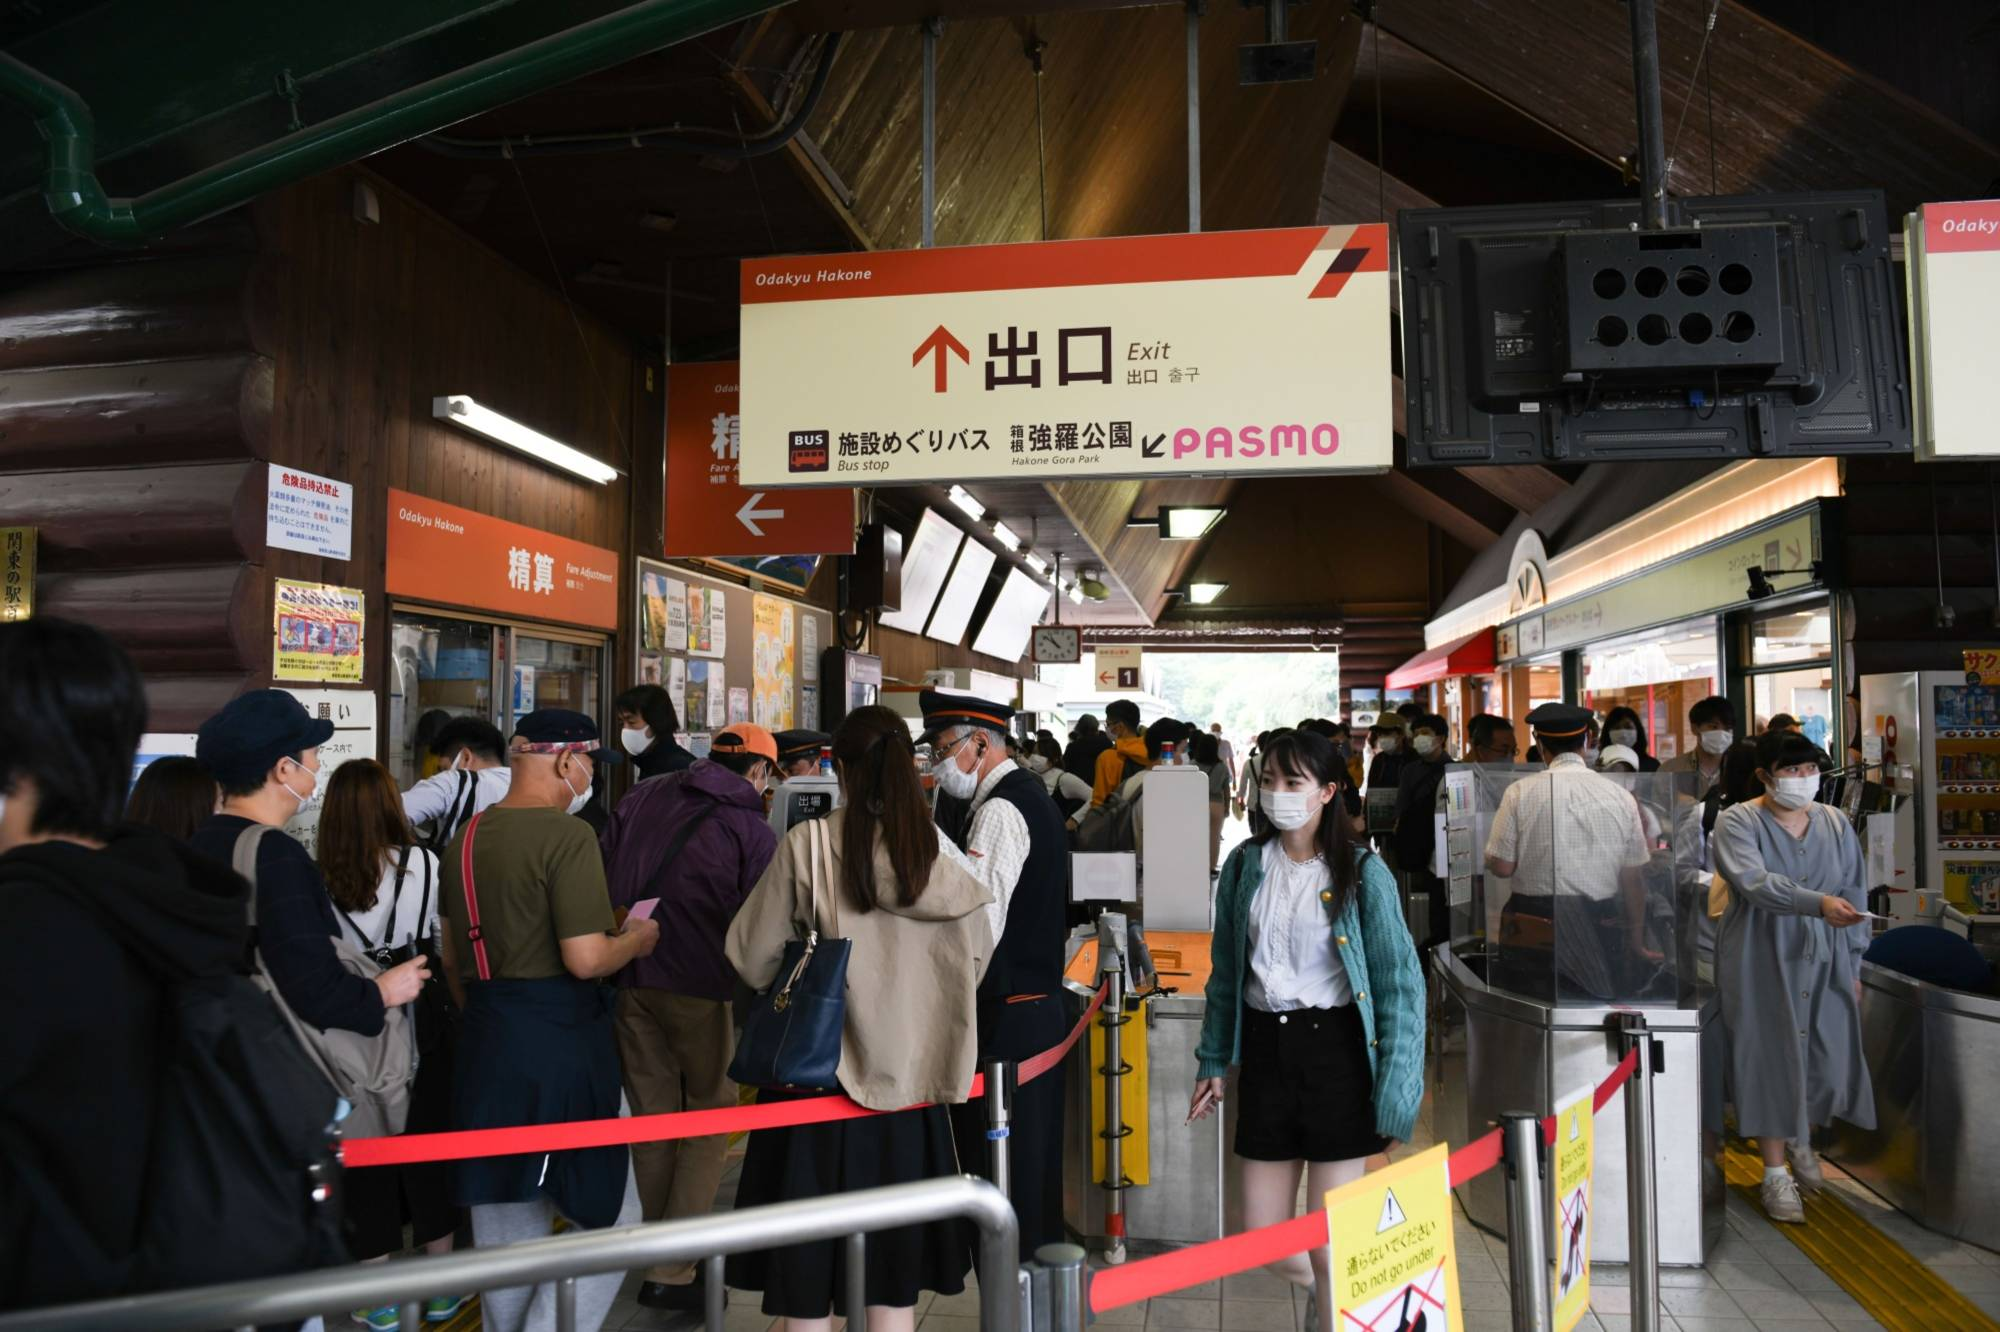 Passengers go through ticket gates at Gora Station in Hakone, Kanagawa Prefecture, on Oct. 4. | BLOOMBERG